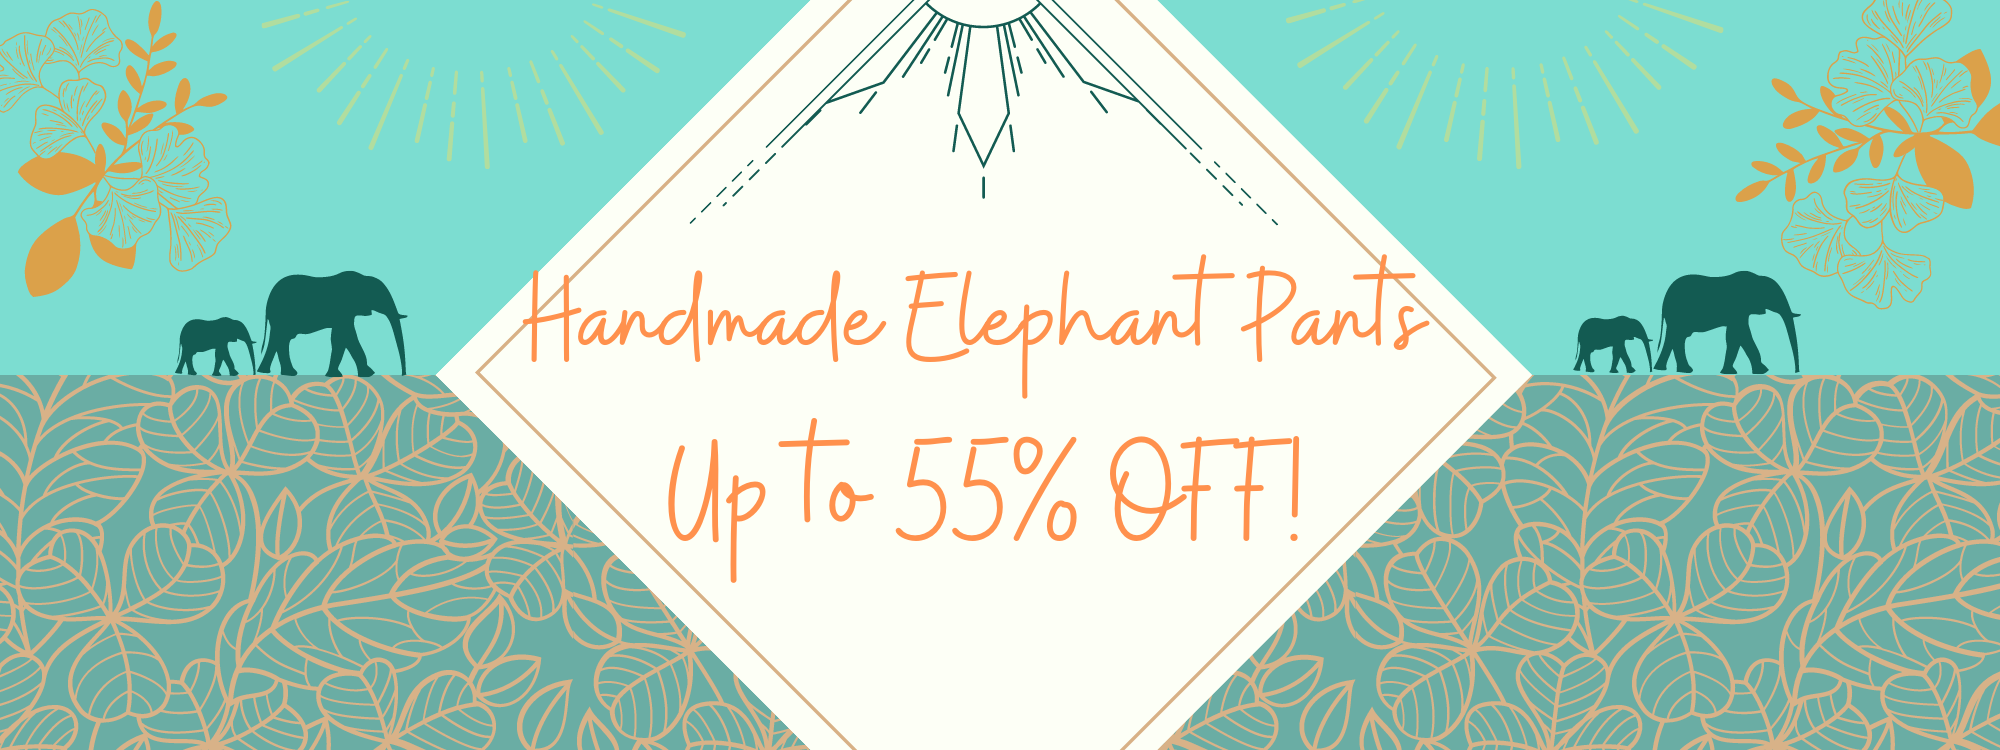 Wholesale elephant pants up to 55% off